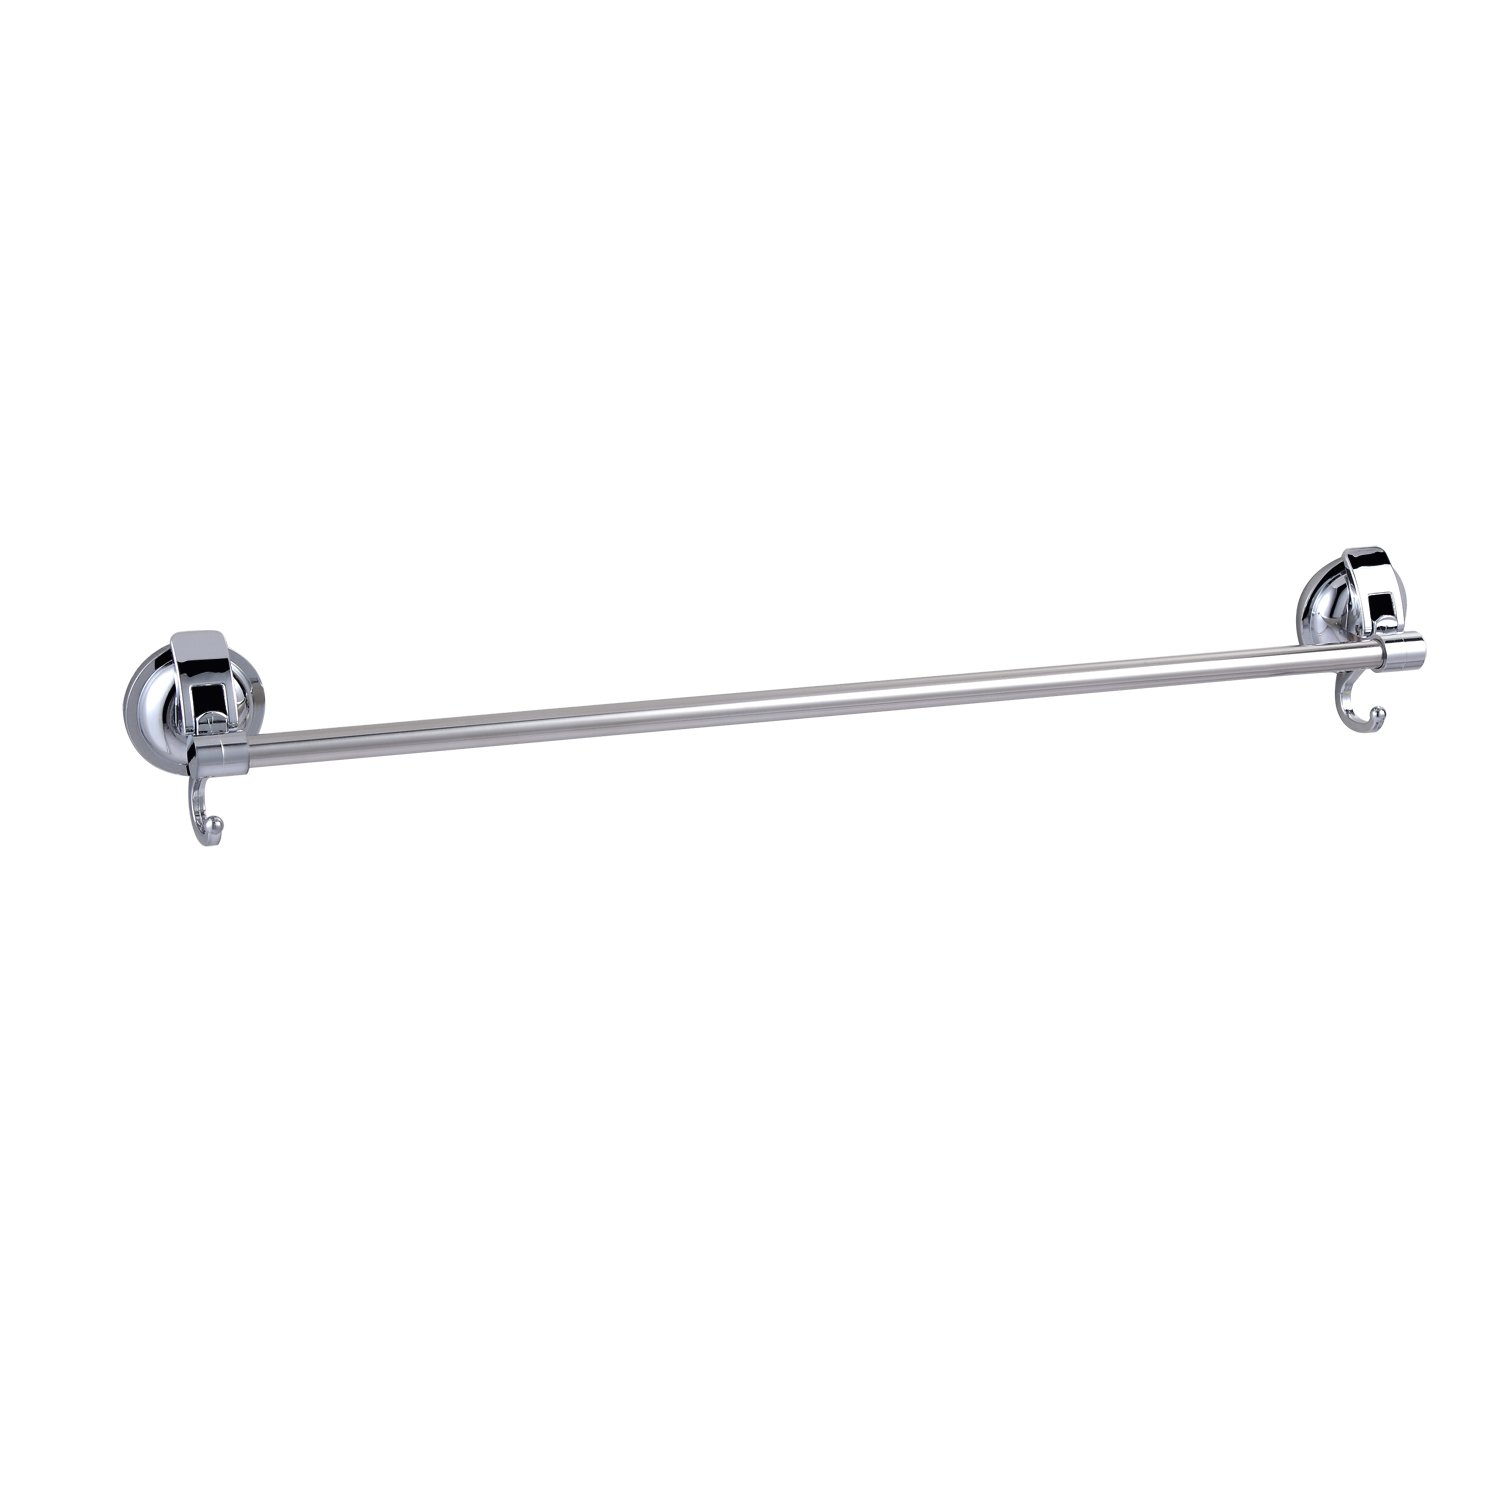 LORDEAR Suction Cup Towel Rack, 24 Inch long Bar Stainless Steel  (Chrome)